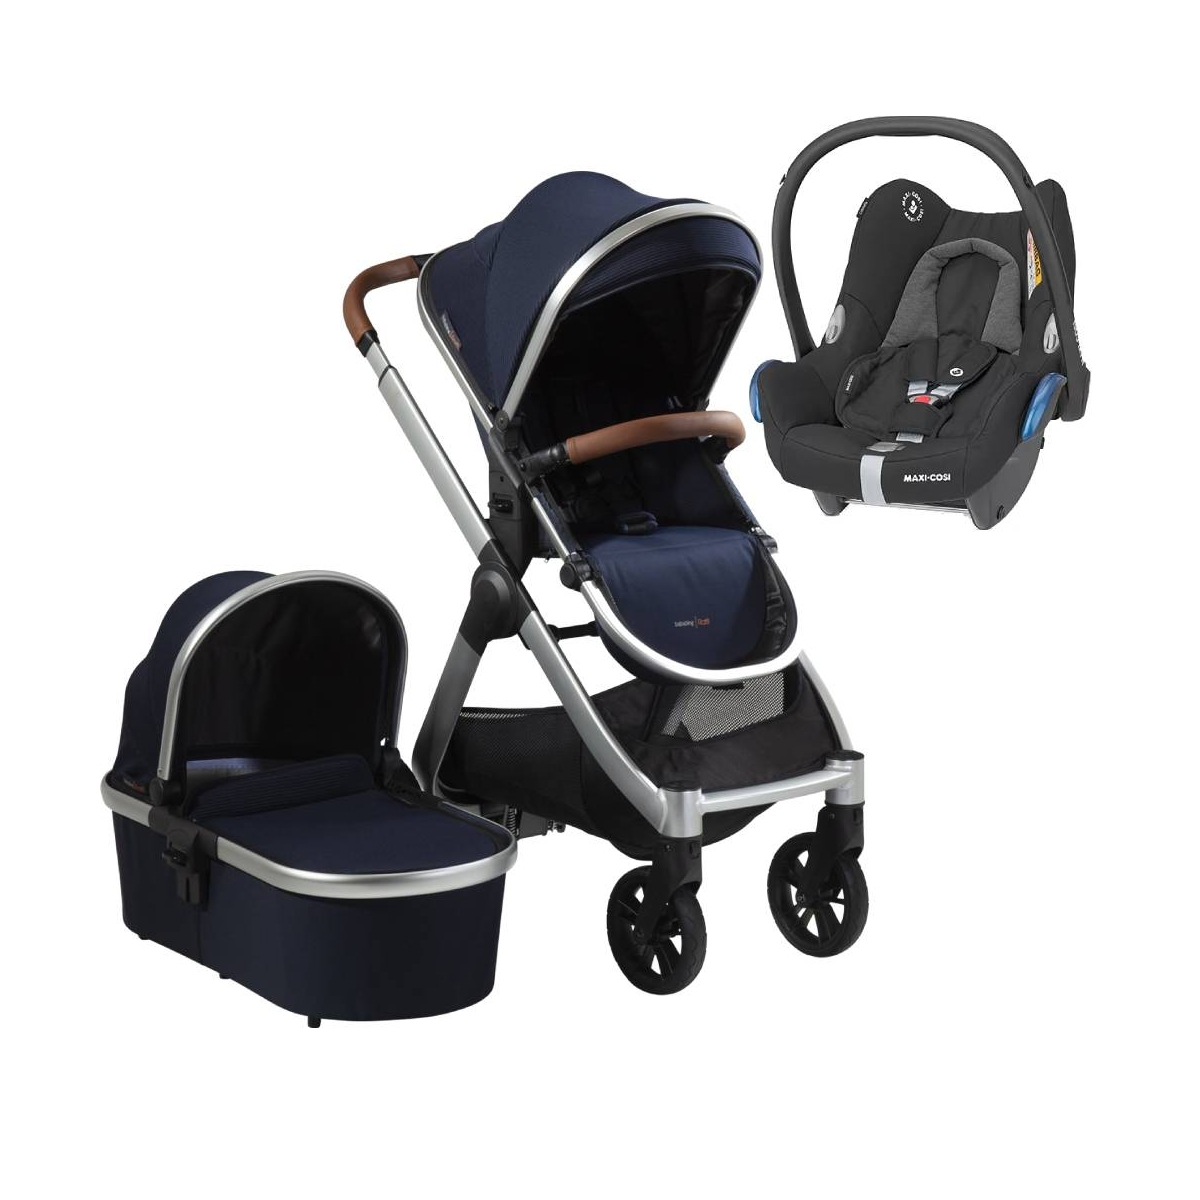 Bababing Raffi Silver Frame 3in1 Maxi Cosi Cabriofix Travel System-Navy Blue (2021)